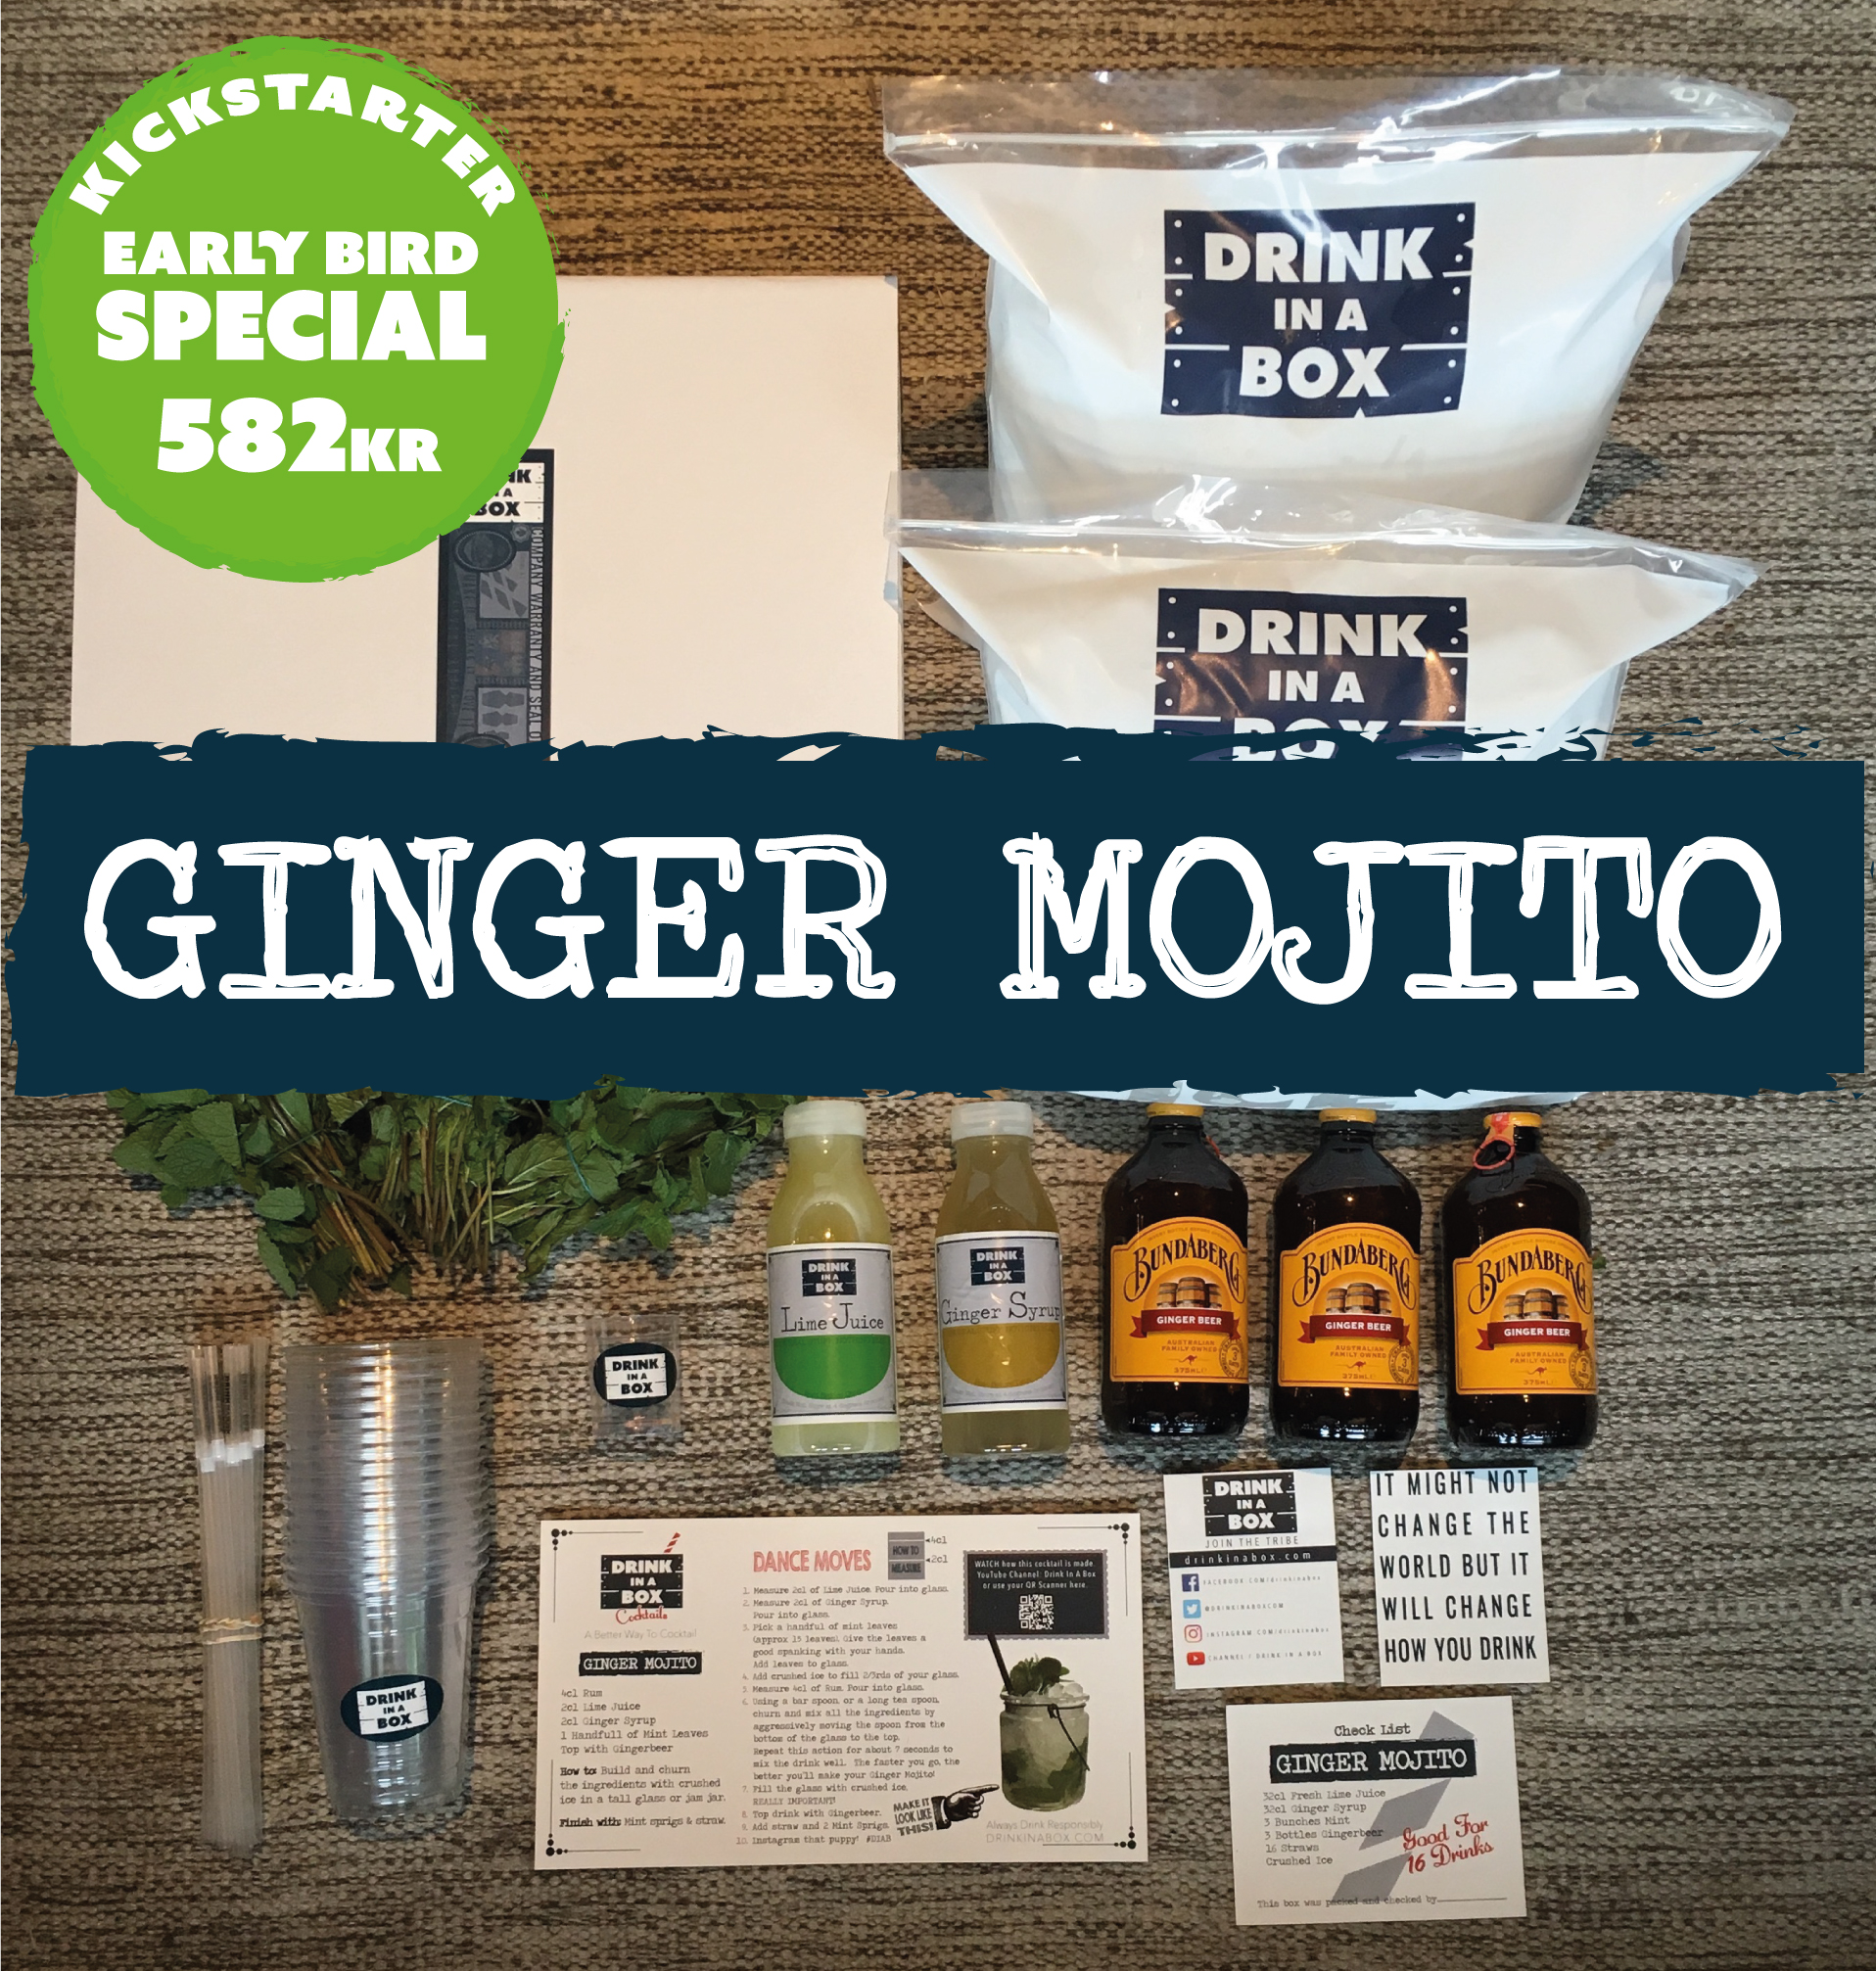 Early-Bird-Special---Ginger-Mojito.jpg